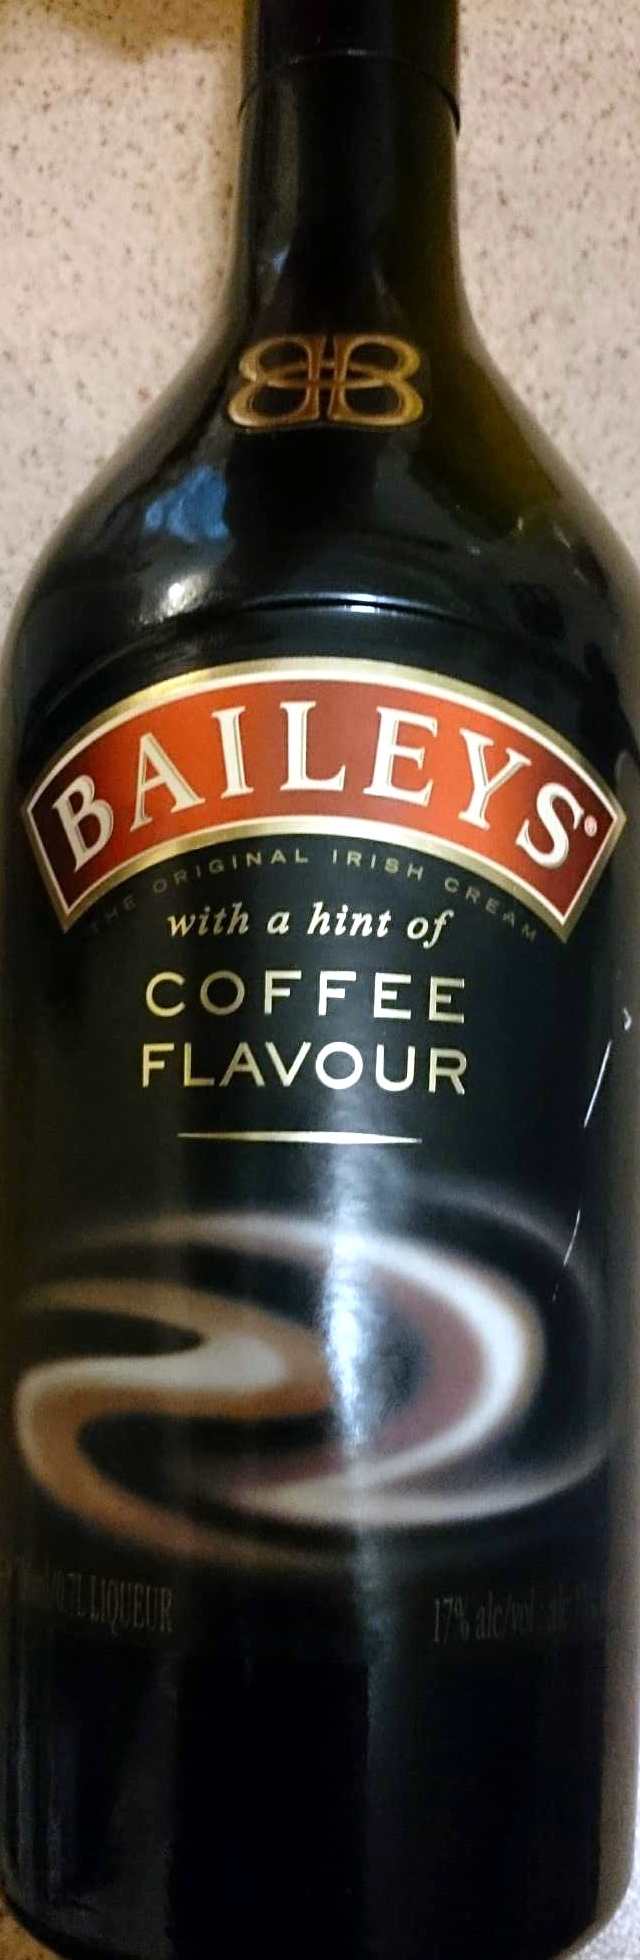 Baileys with a hint of Coffee Flavour - Product - en